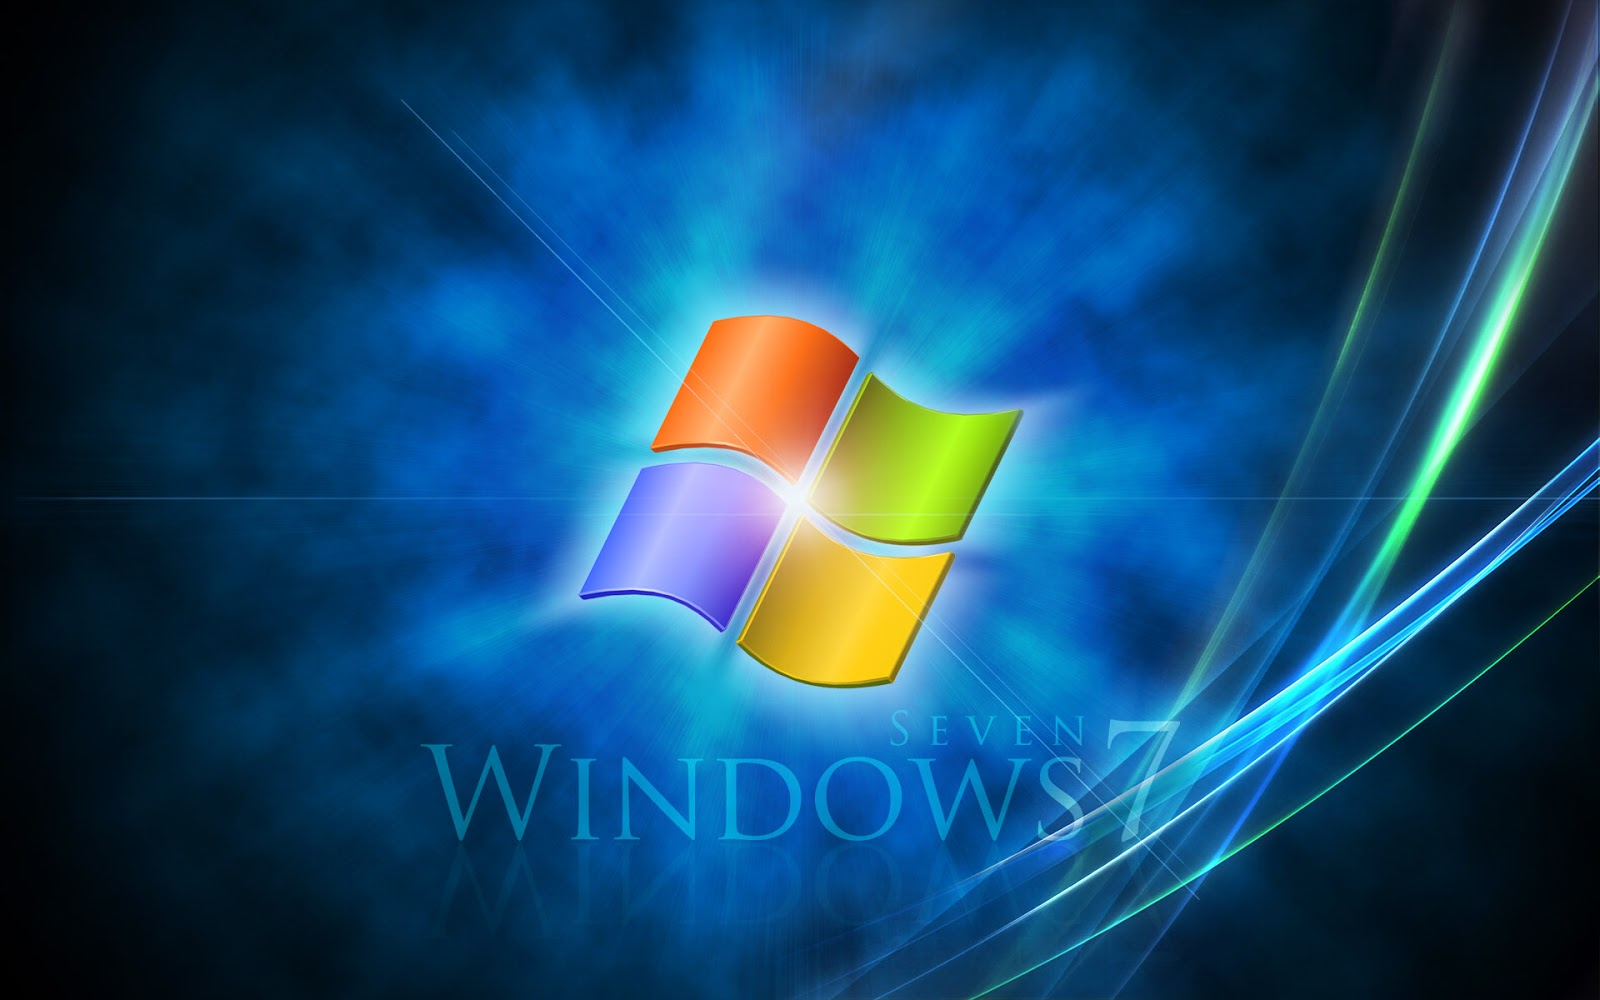 Wallpaper windows 7 full hd - Download Wallpaper win 7 | Wallpaper Full HD Wide | Wallpaperhd360